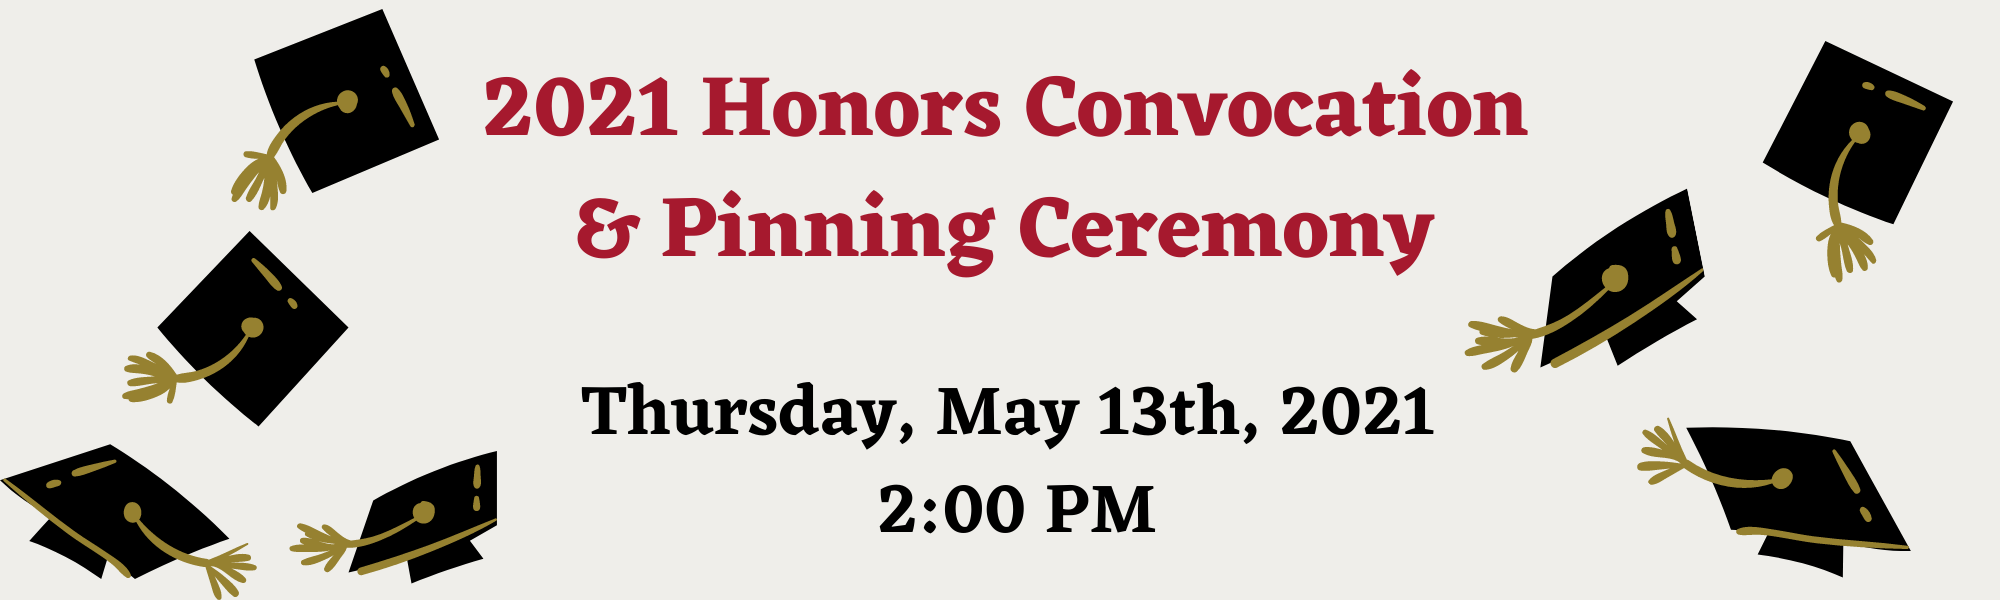 2021 Honors Convocation & Pinning Ceremony